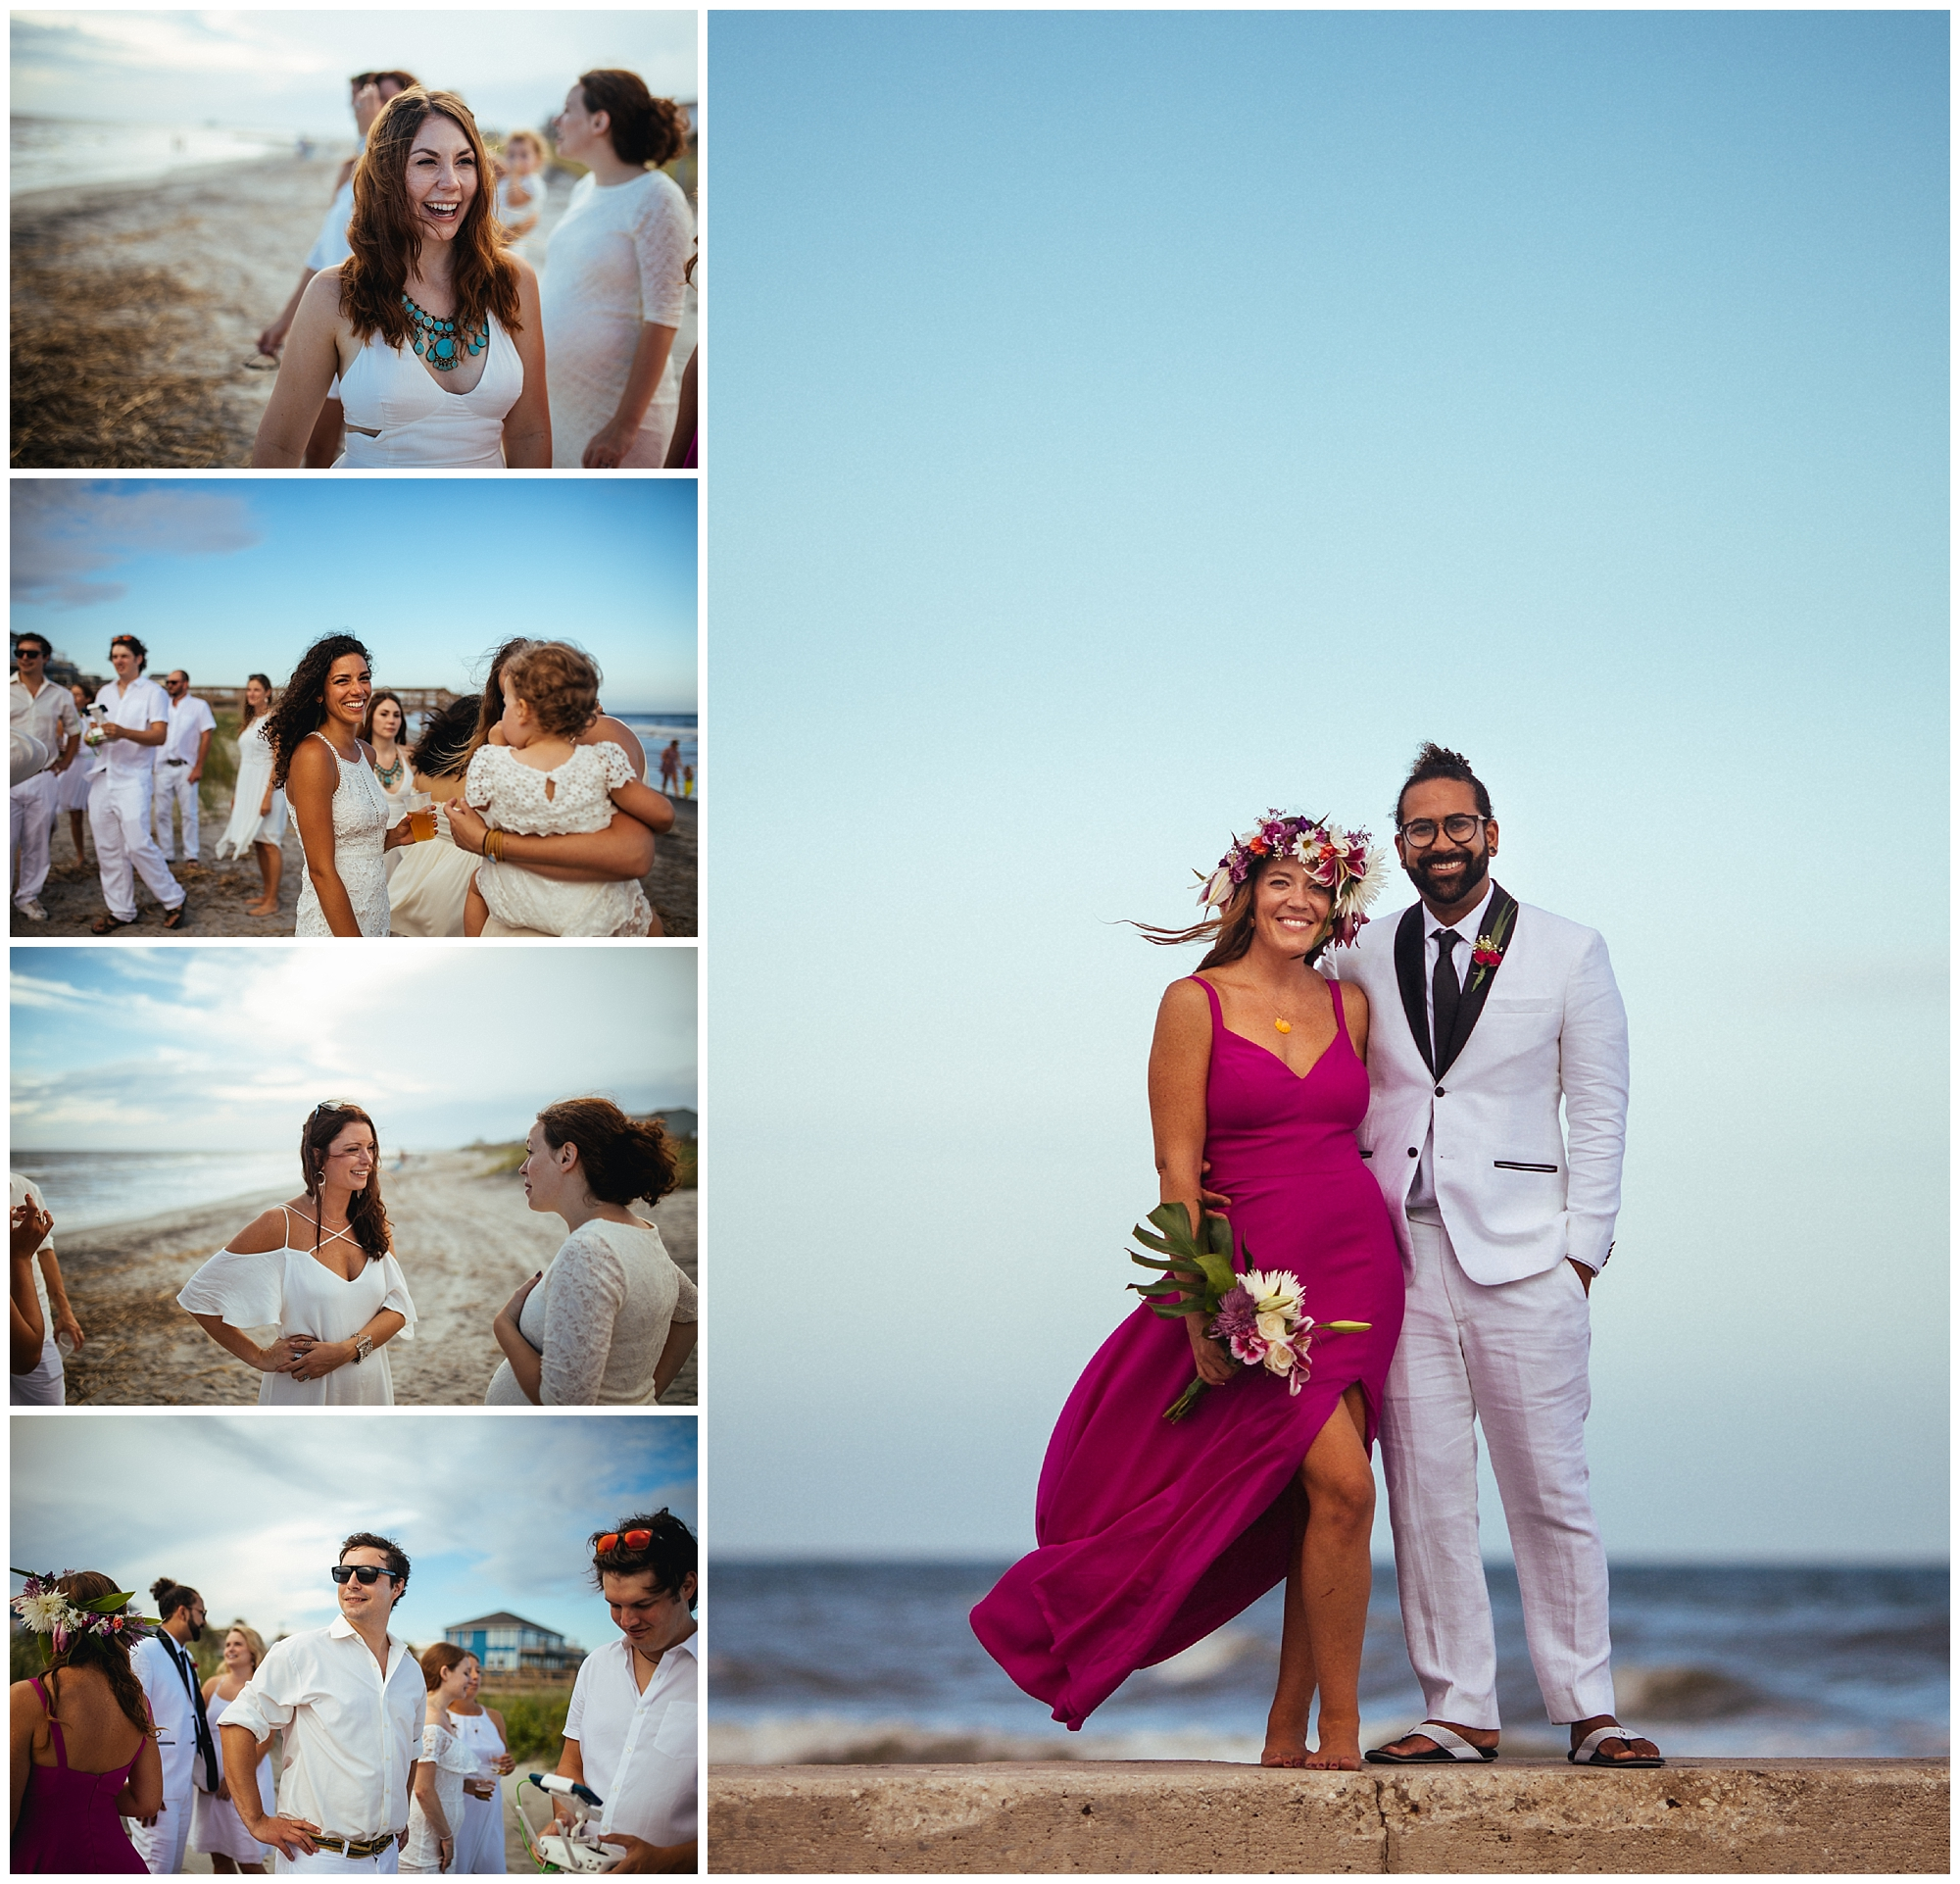 unique-beach-wedding15.jpg